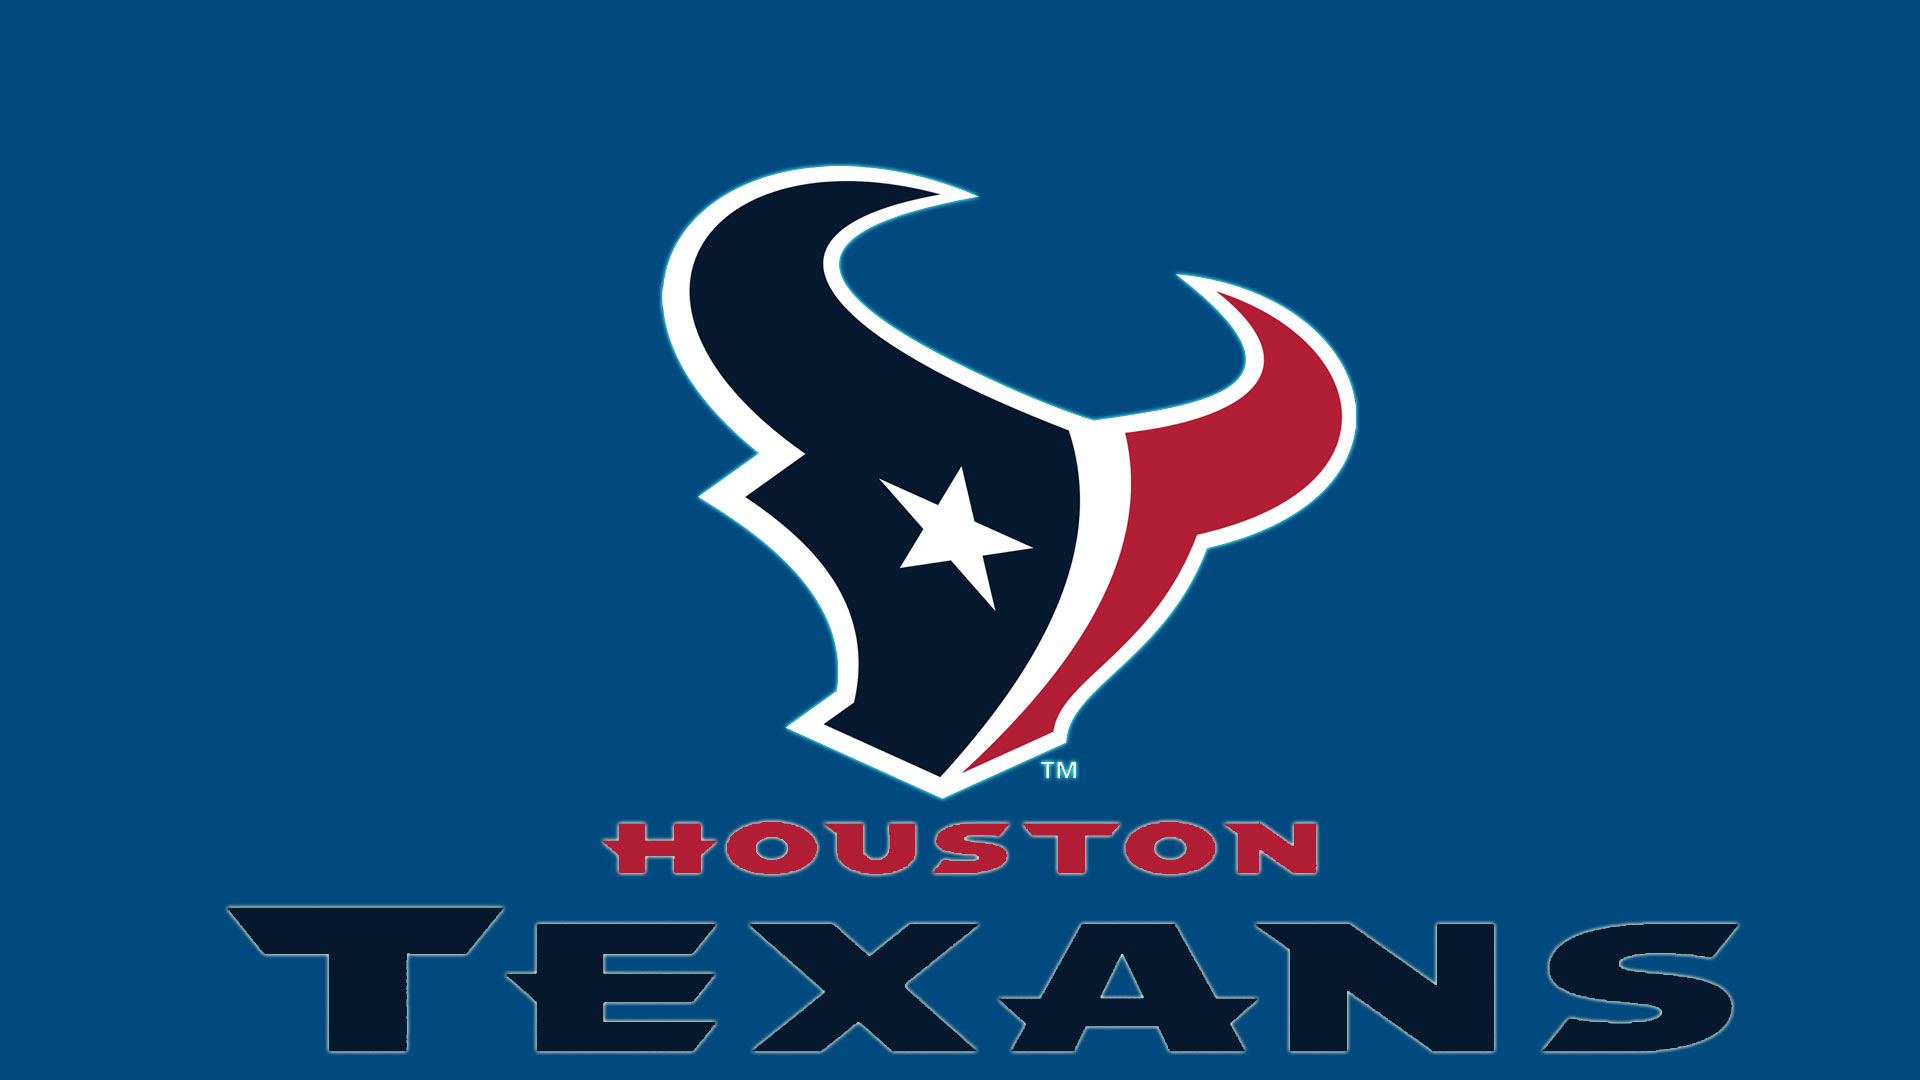 Houston Texans Logo 1920x1080